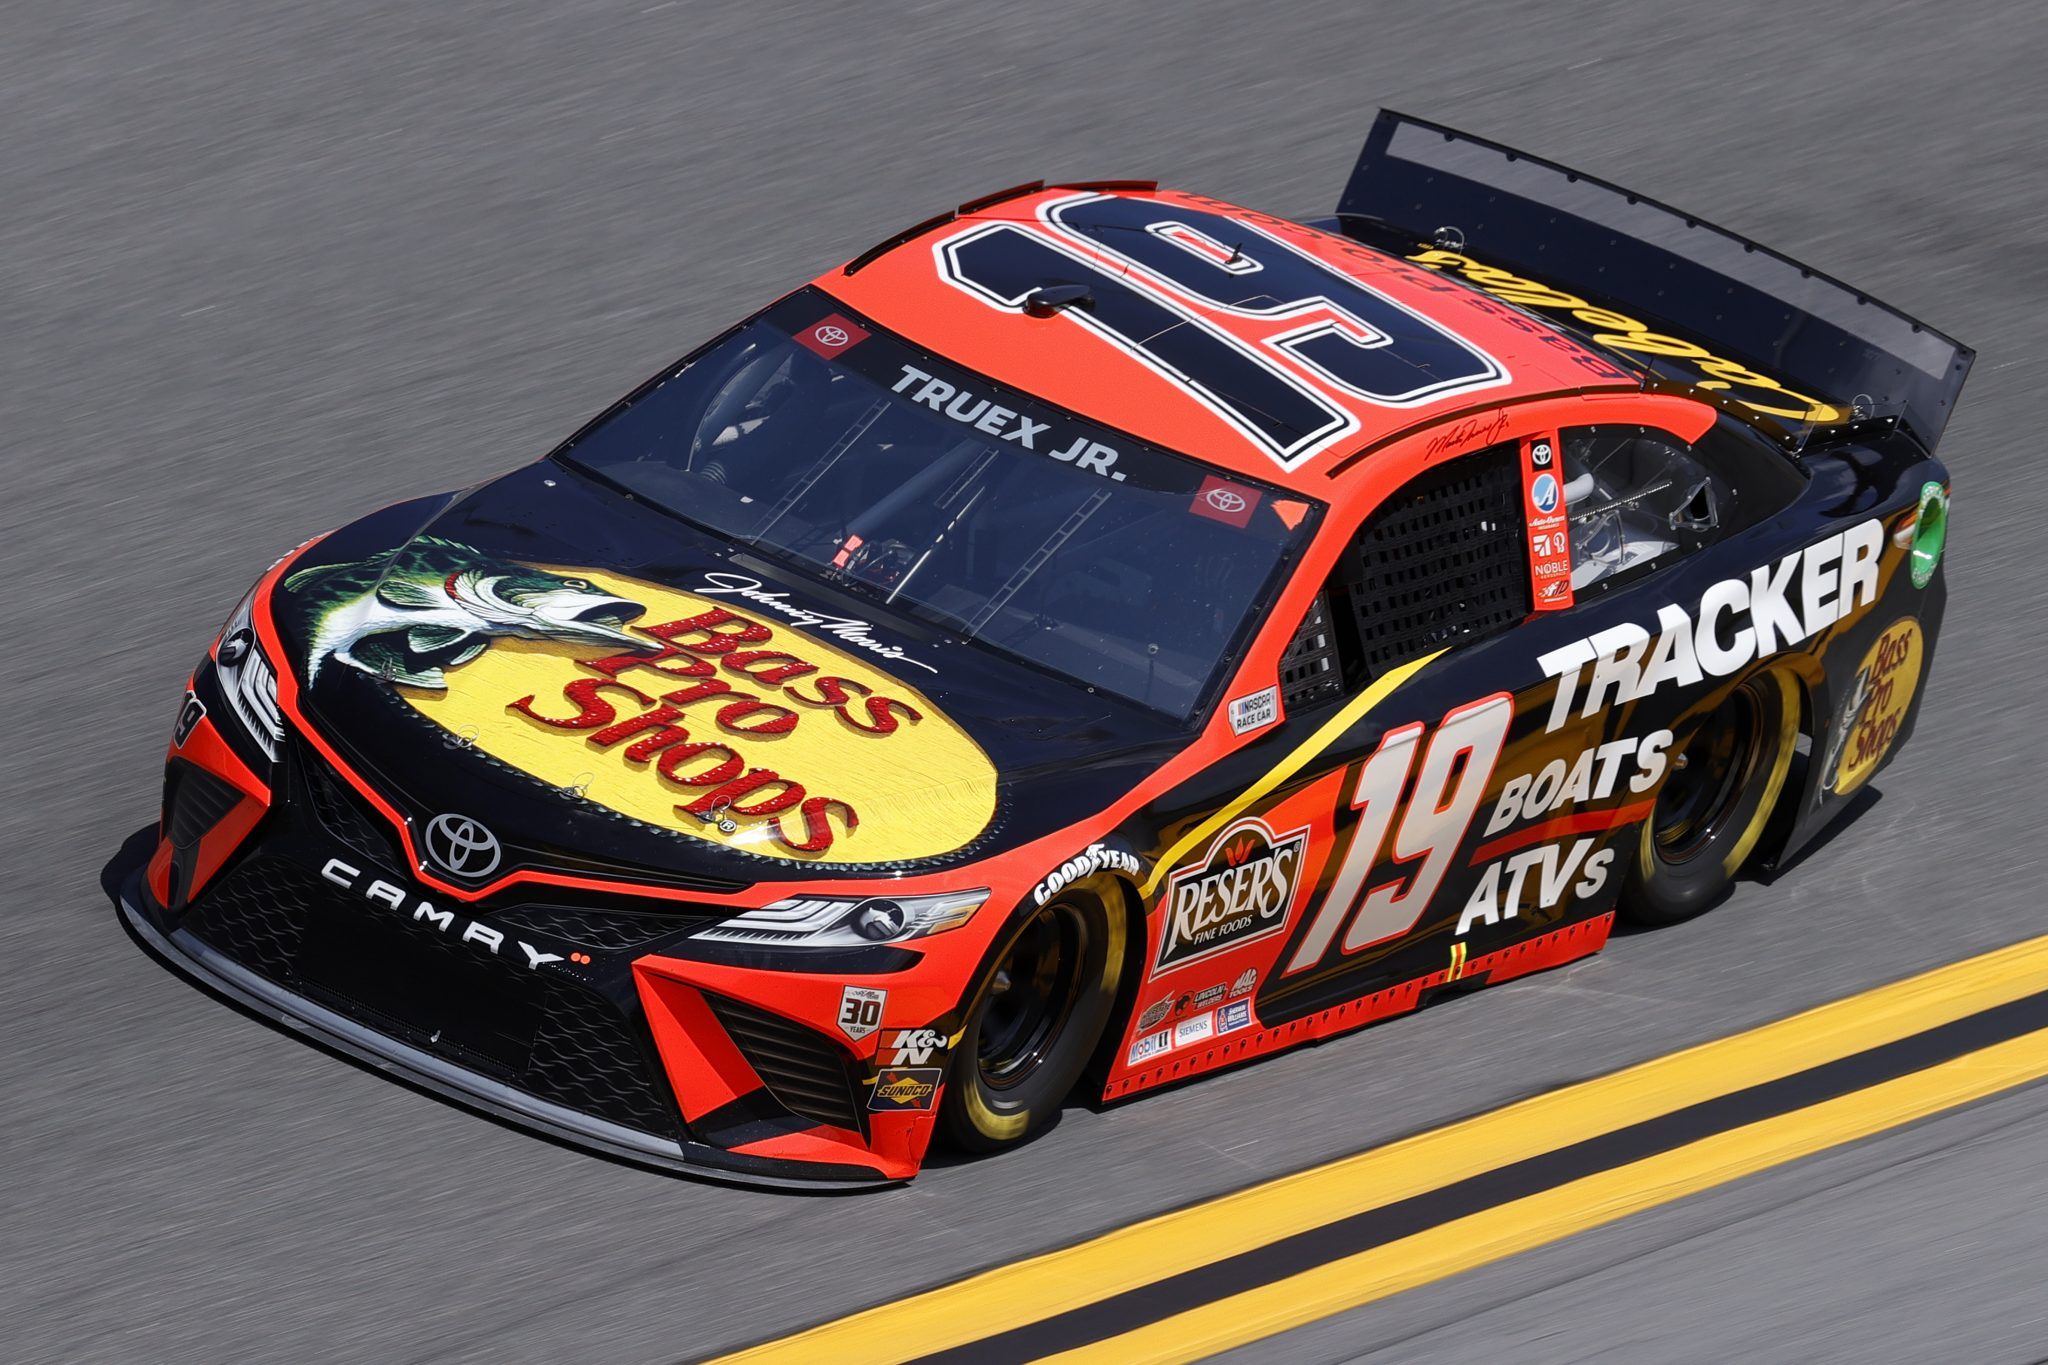 DAYTONA BEACH, FLORIDA - FEBRUARY 10: Martin Truex Jr., driver of the #19 Bass Pro Shops Toyota, drives during practice for the NASCAR Cup Series 63rd Annual Daytona 500 at Daytona International Speedway on February 10, 2021 in Daytona Beach, Florida. (Photo by Jared C. Tilton/Getty Images) | Getty Images